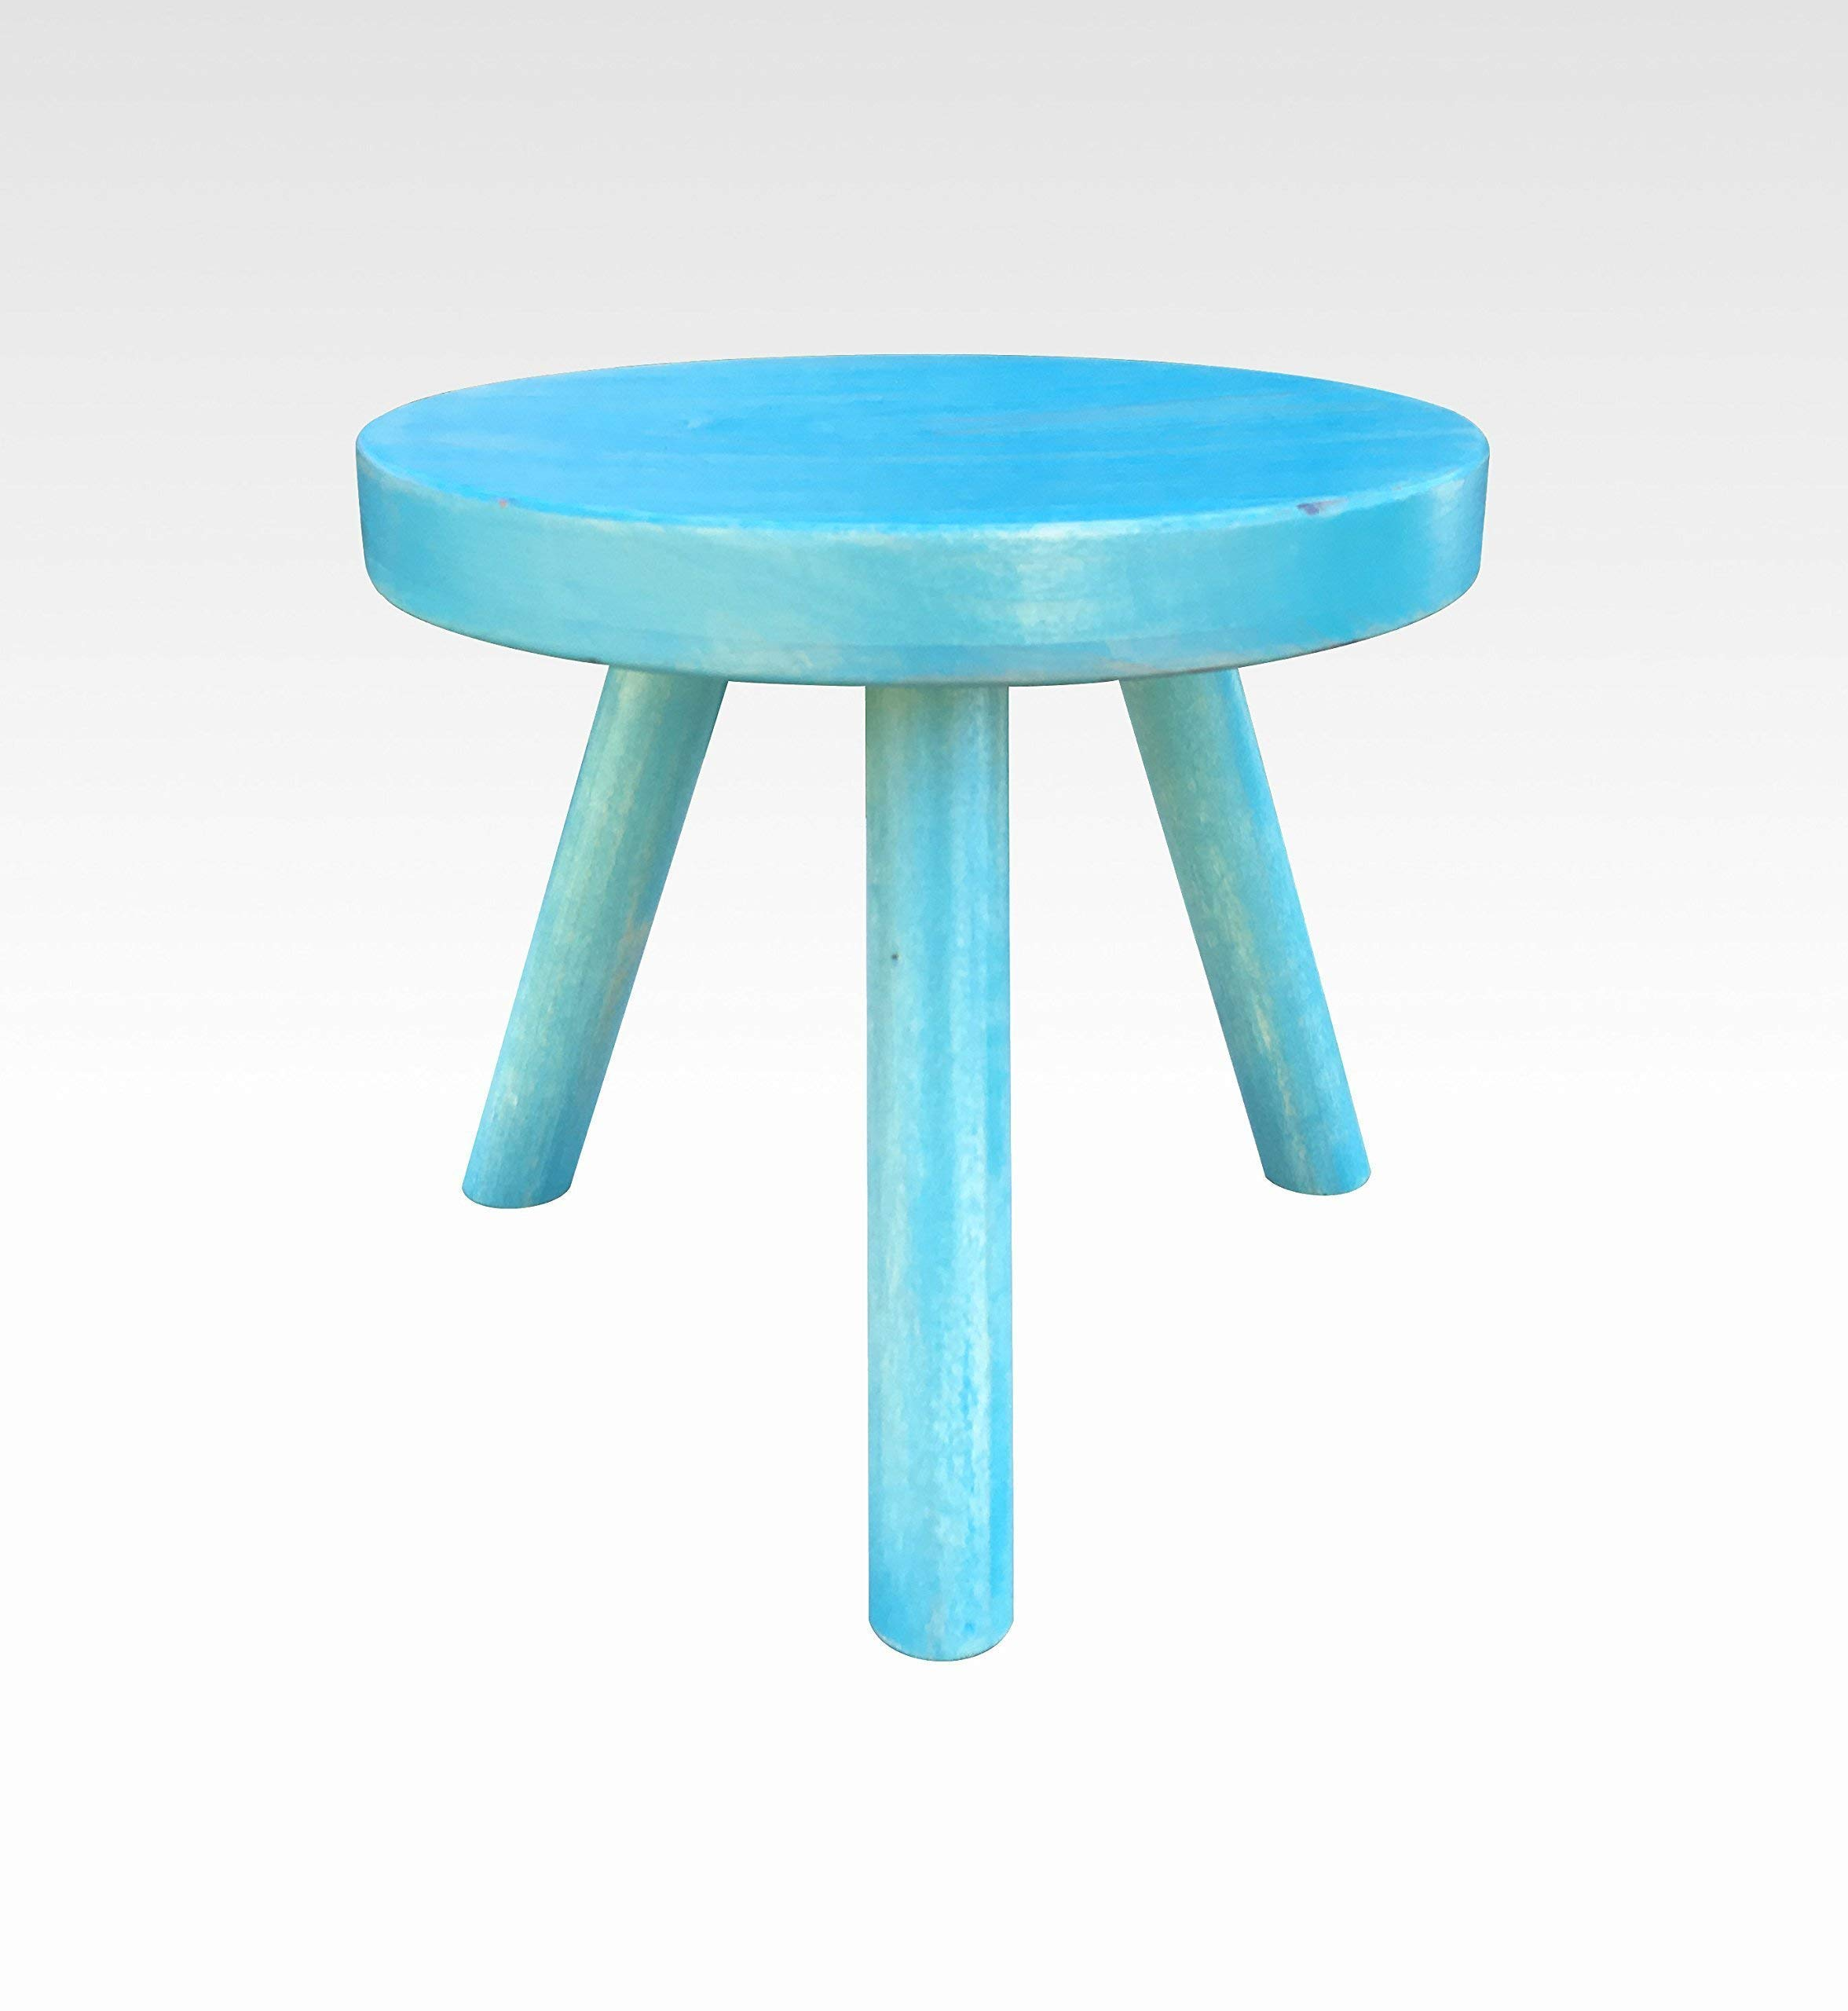 Modern Plant Stand Three Leg Stool by CW Furniture In Aqua Indoor Flower Pot Base Display Holder Solid Wooden Kids Chair Table Simple Minimalist Small by Candlewood Furniture